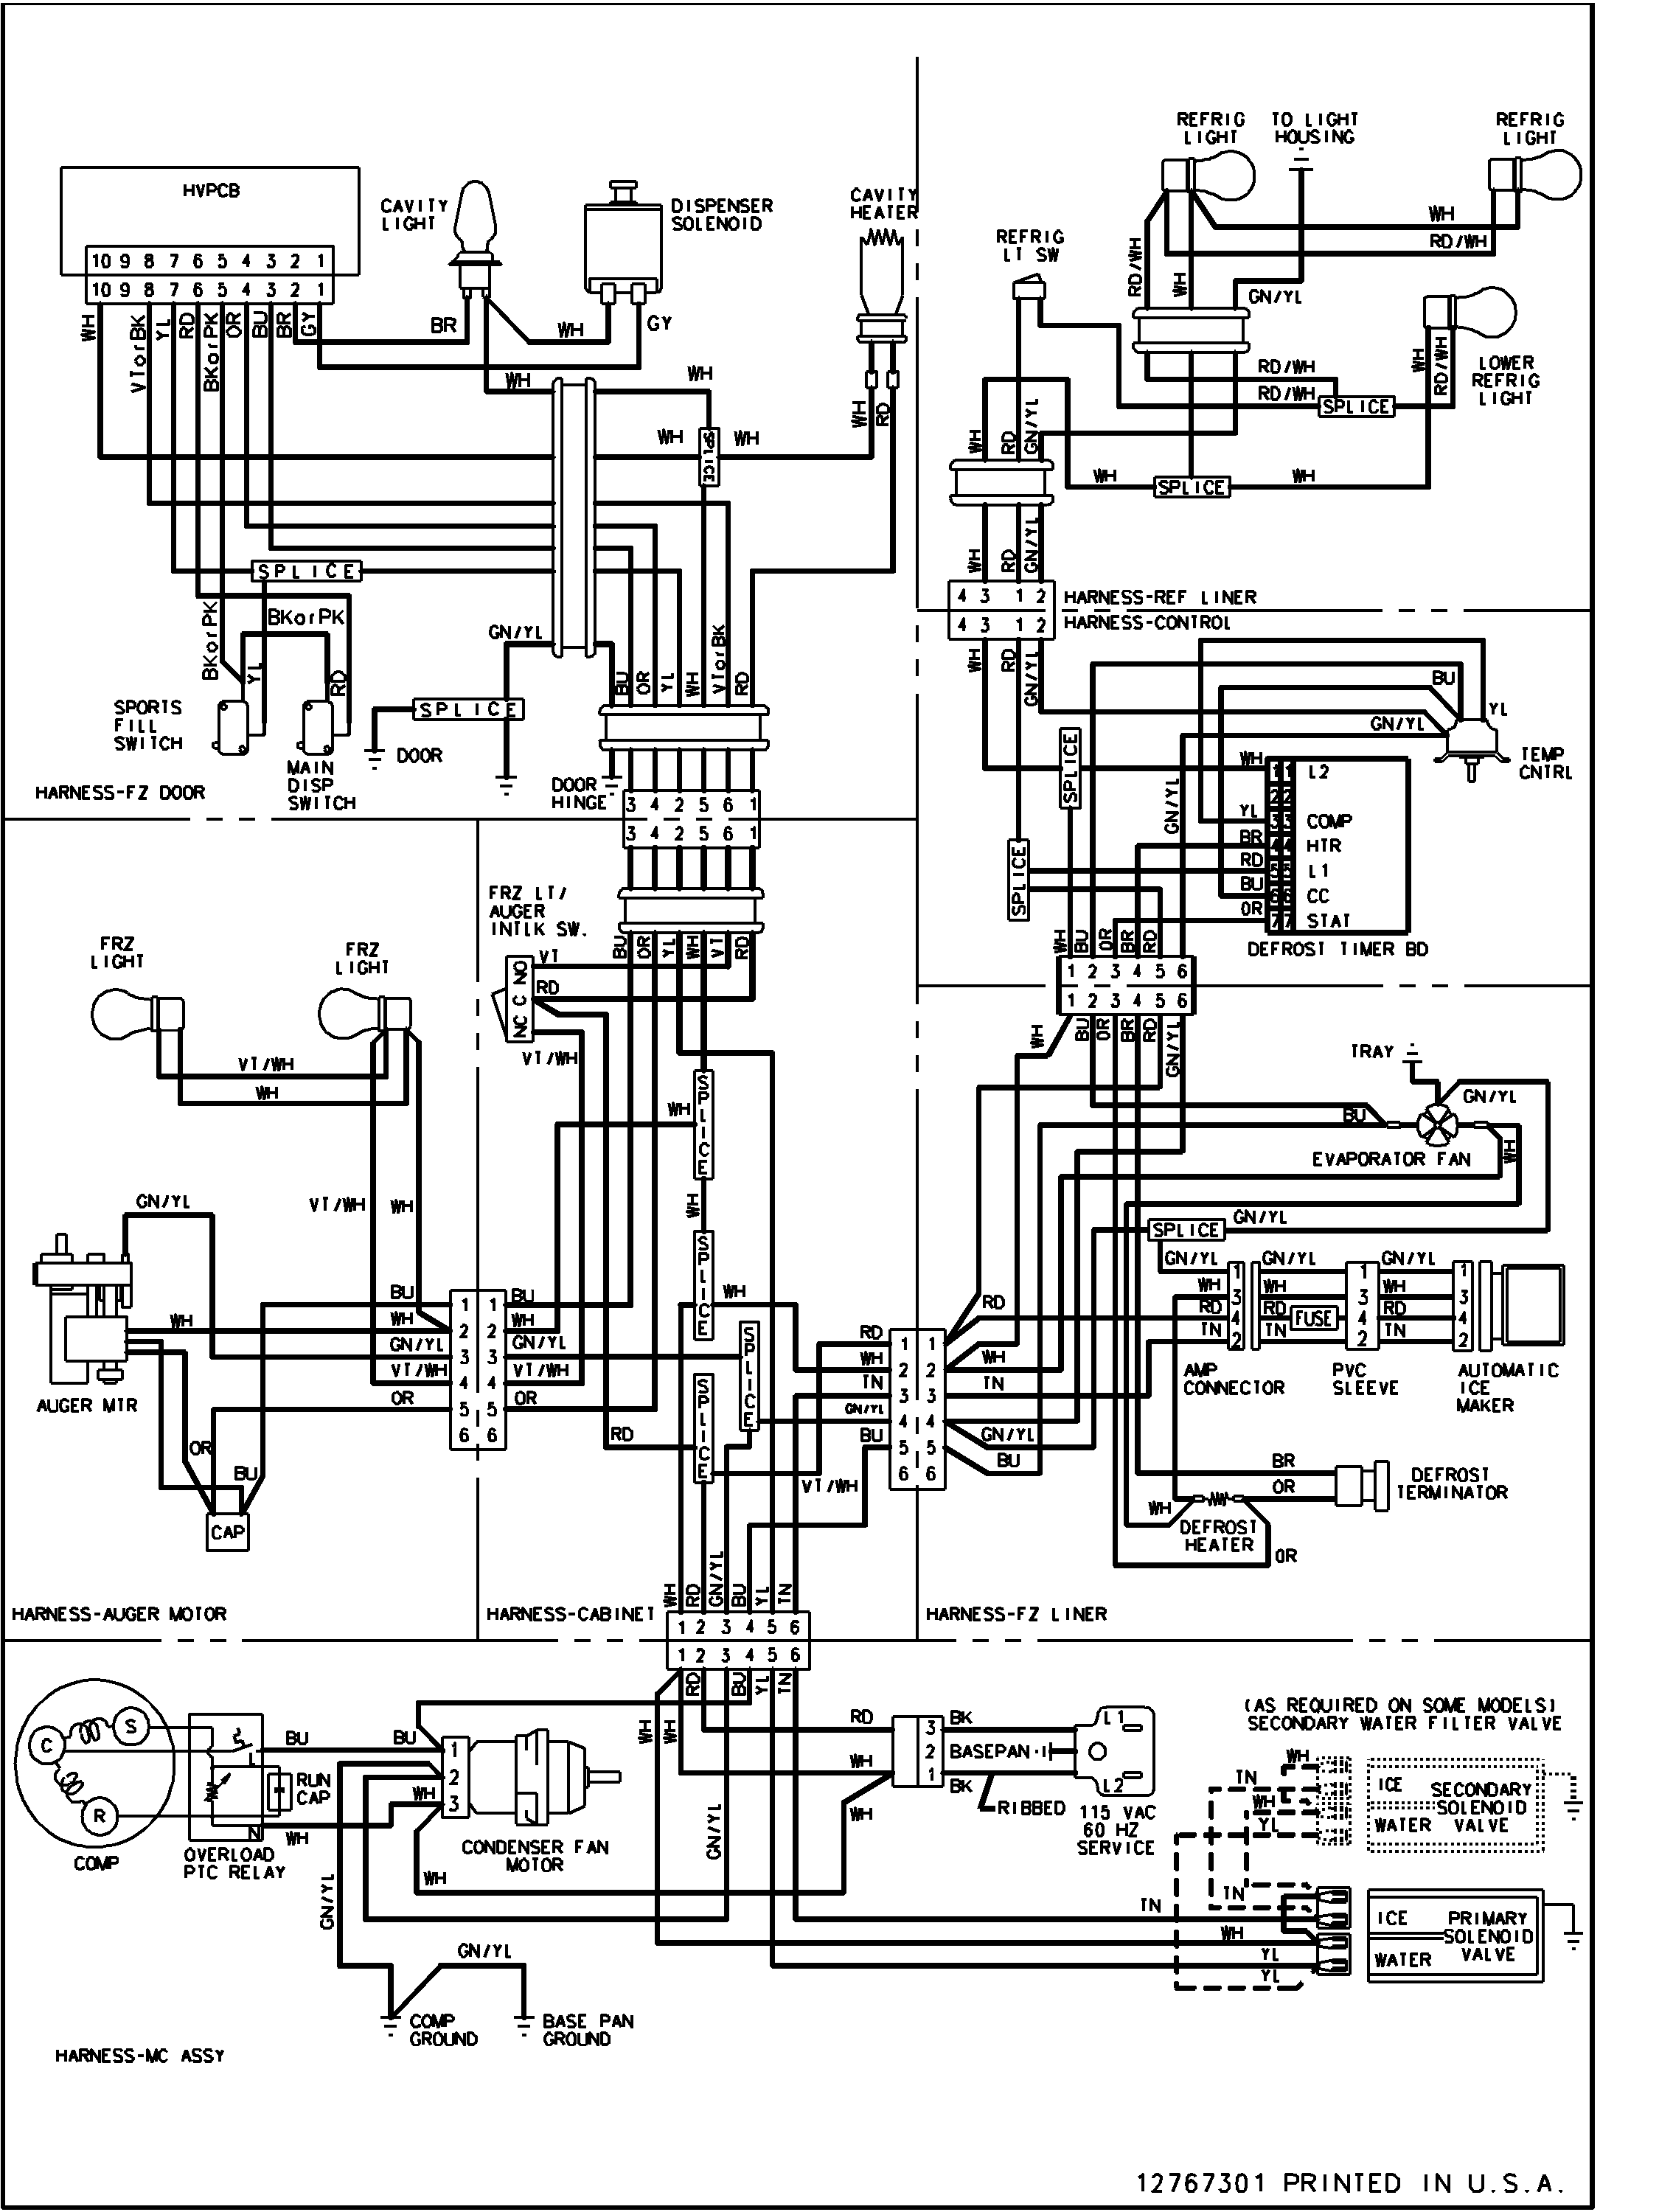 Luxaire Hamd Fo24sa Wiring Diagram